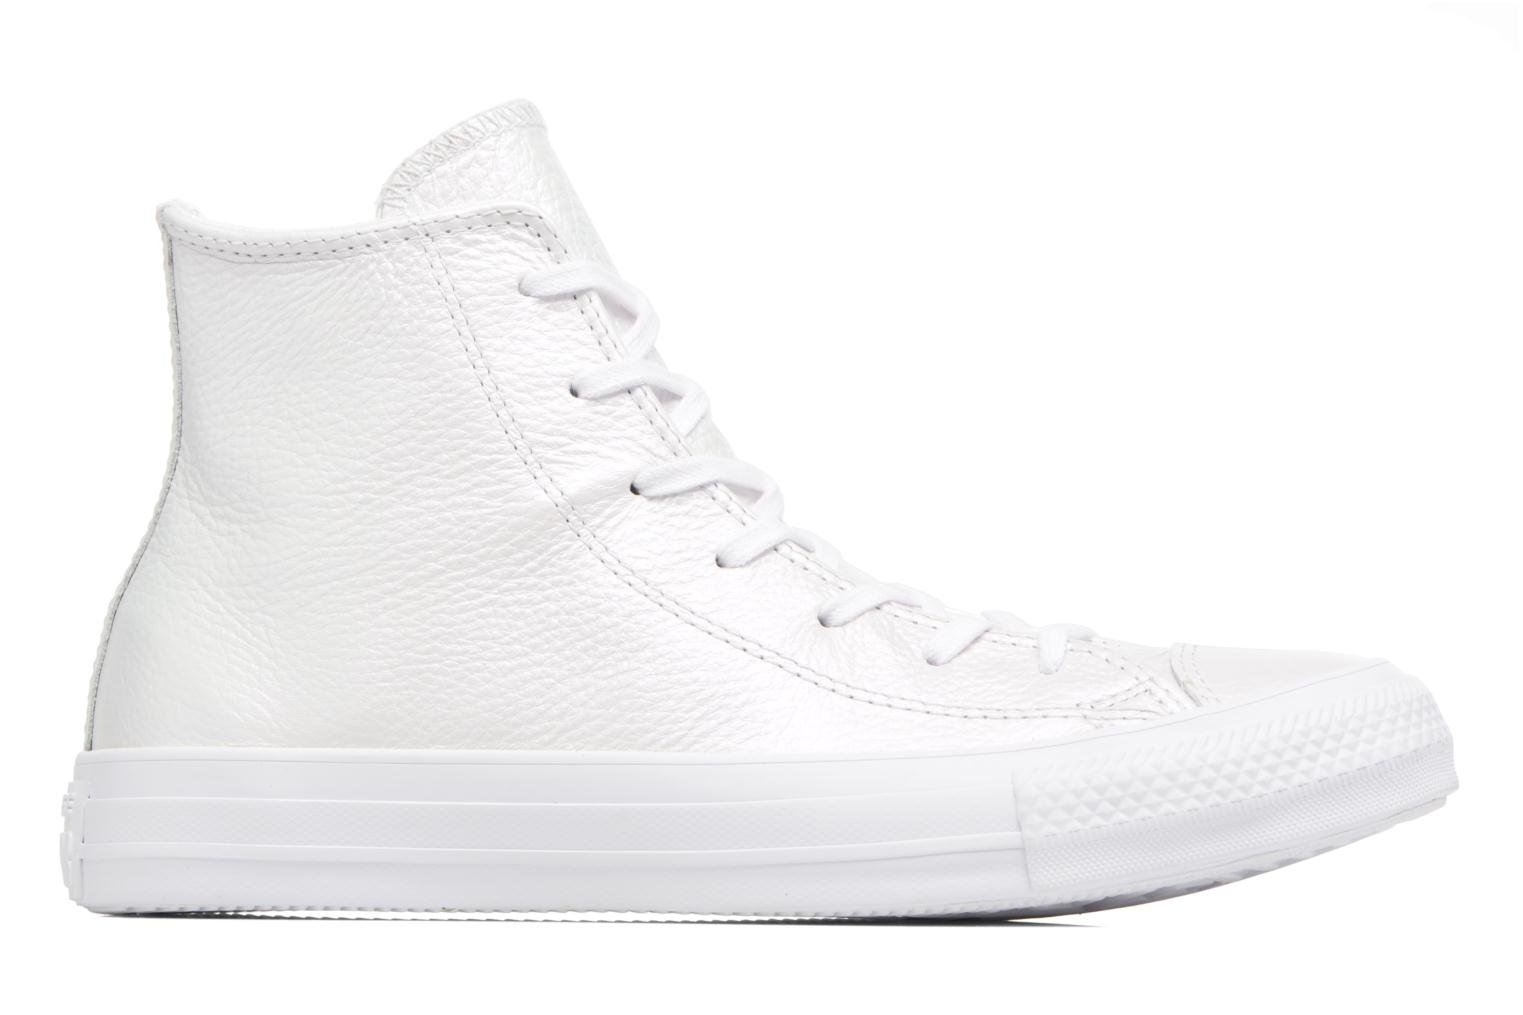 Chuck Taylor All Star Iridescent Leather Hi White/white/white